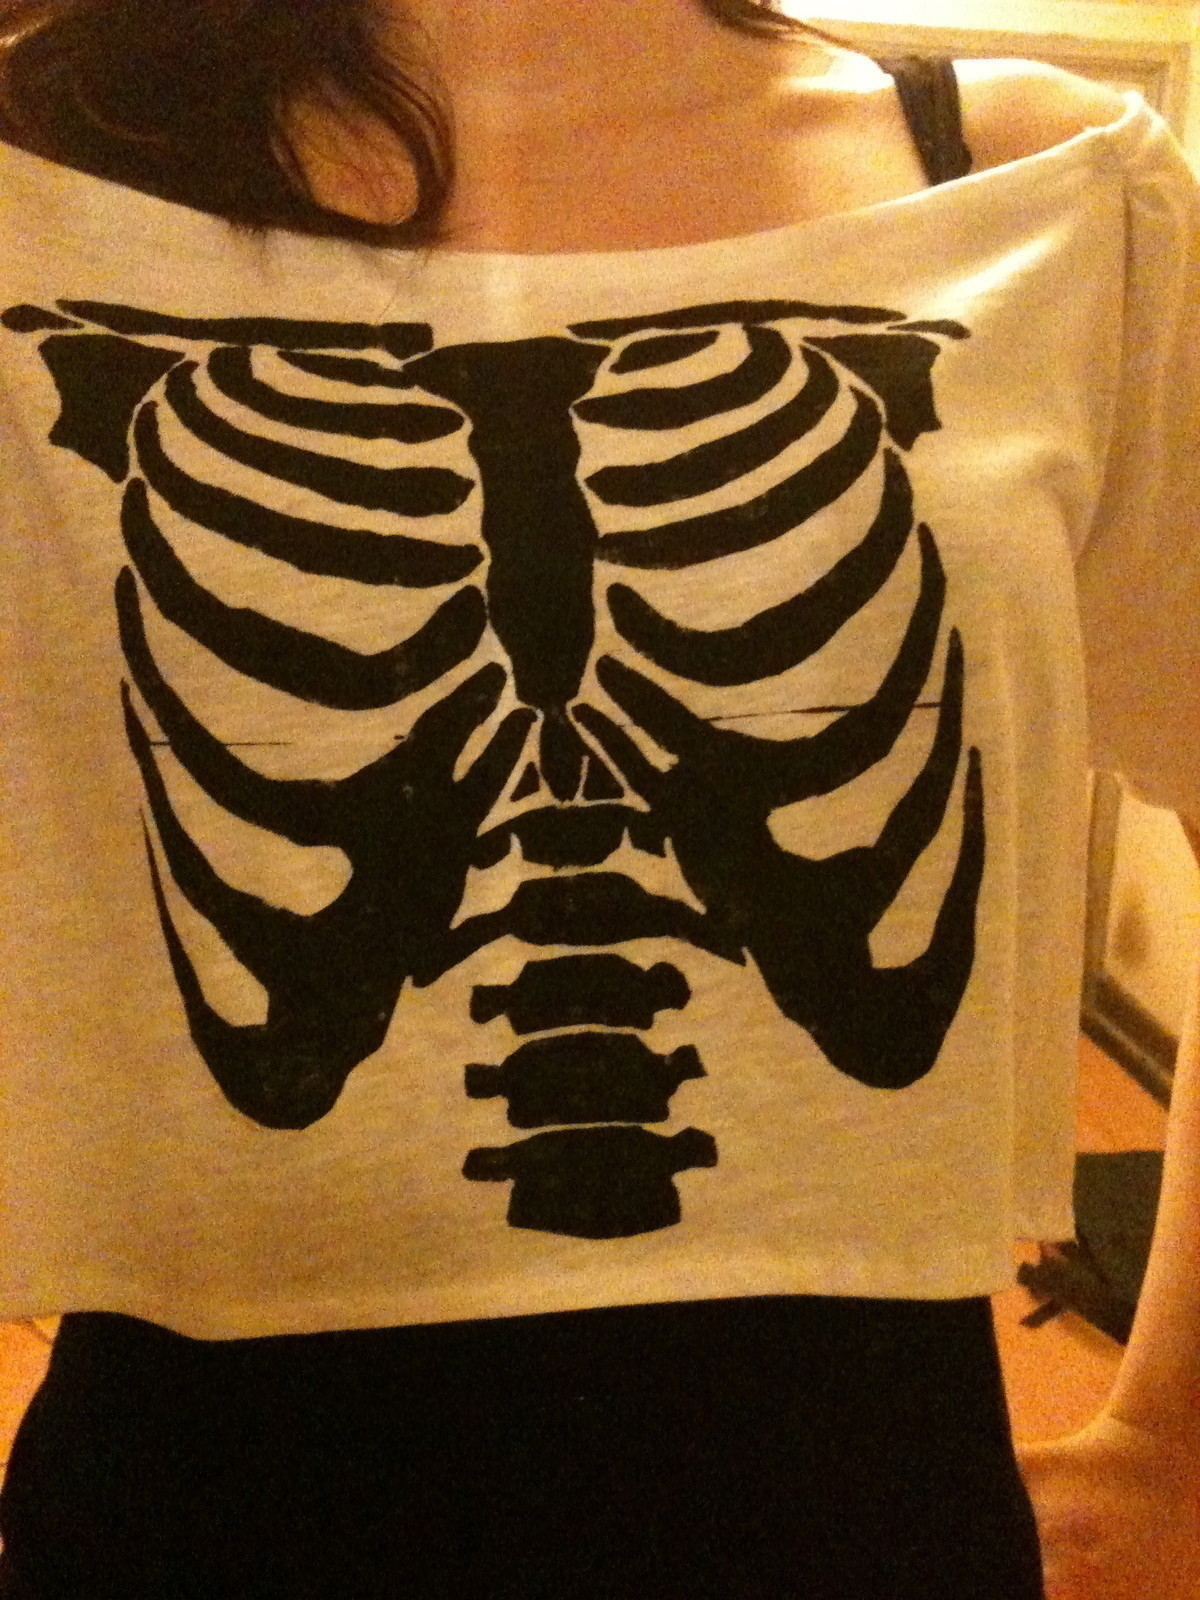 Skeleton Top A T Shirt Stencilling And Sewing On Cut